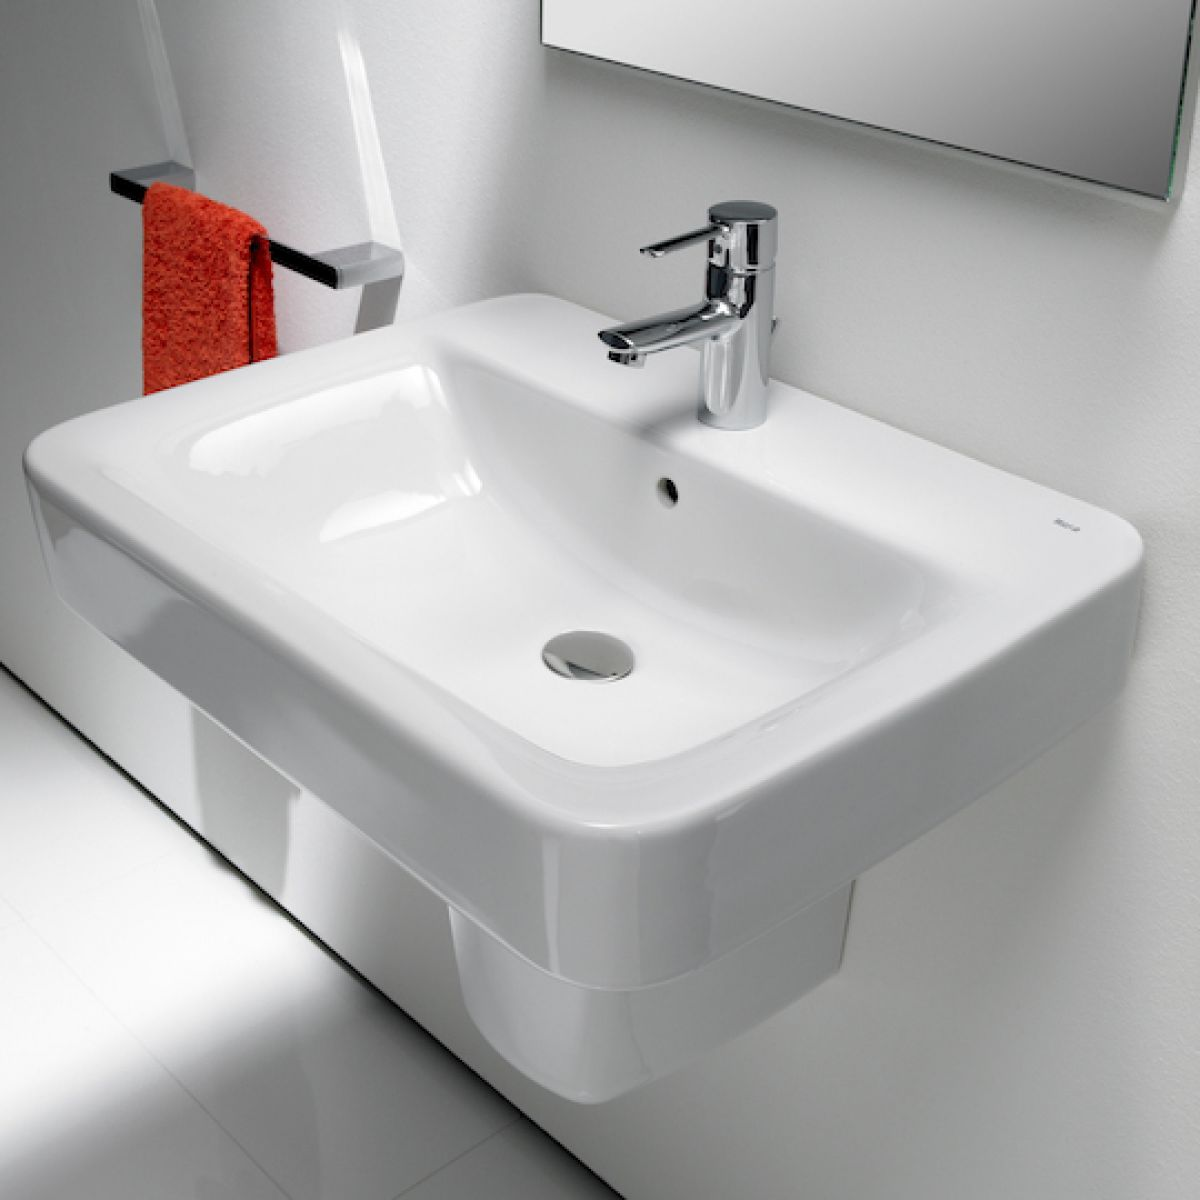 roca bathroom sinks roca senso square bathroom sink uk bathrooms 14235 | 64594